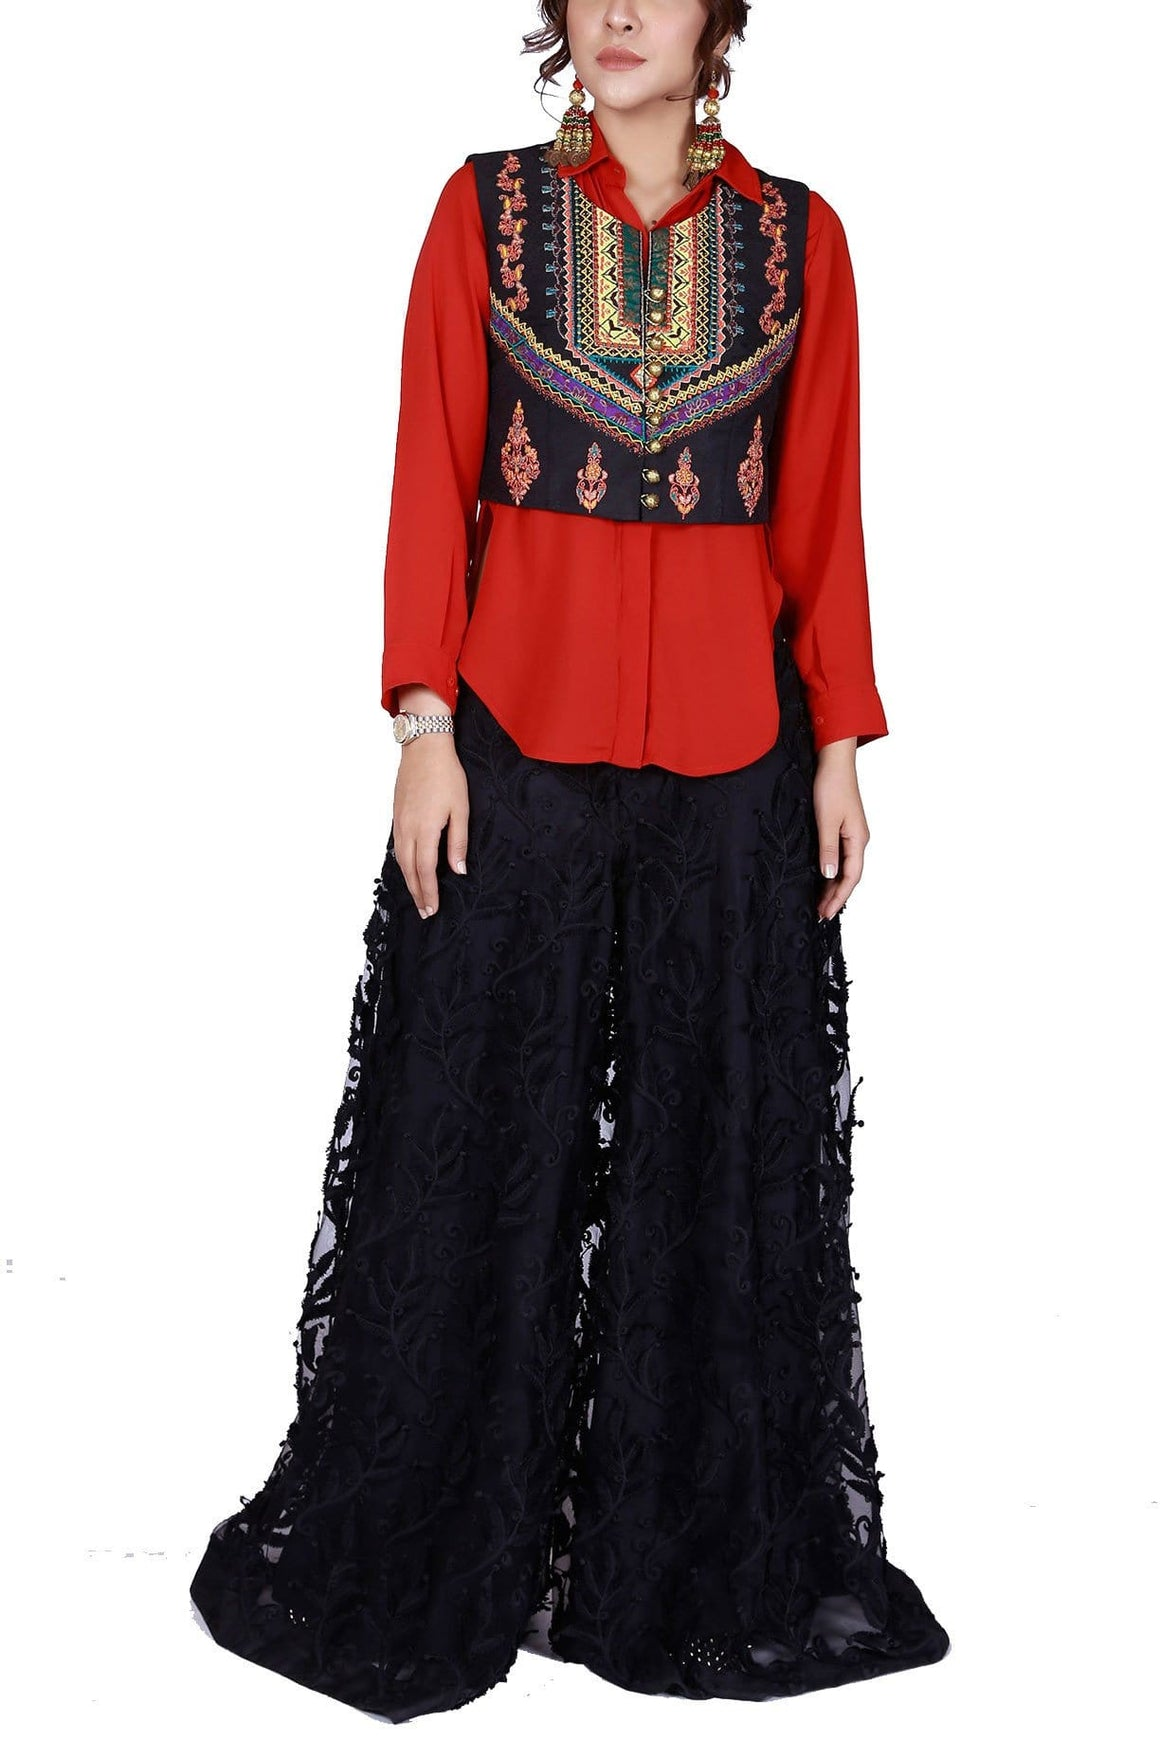 FnkAsia - Red Silk Intricately Embriodered Vest With Pants